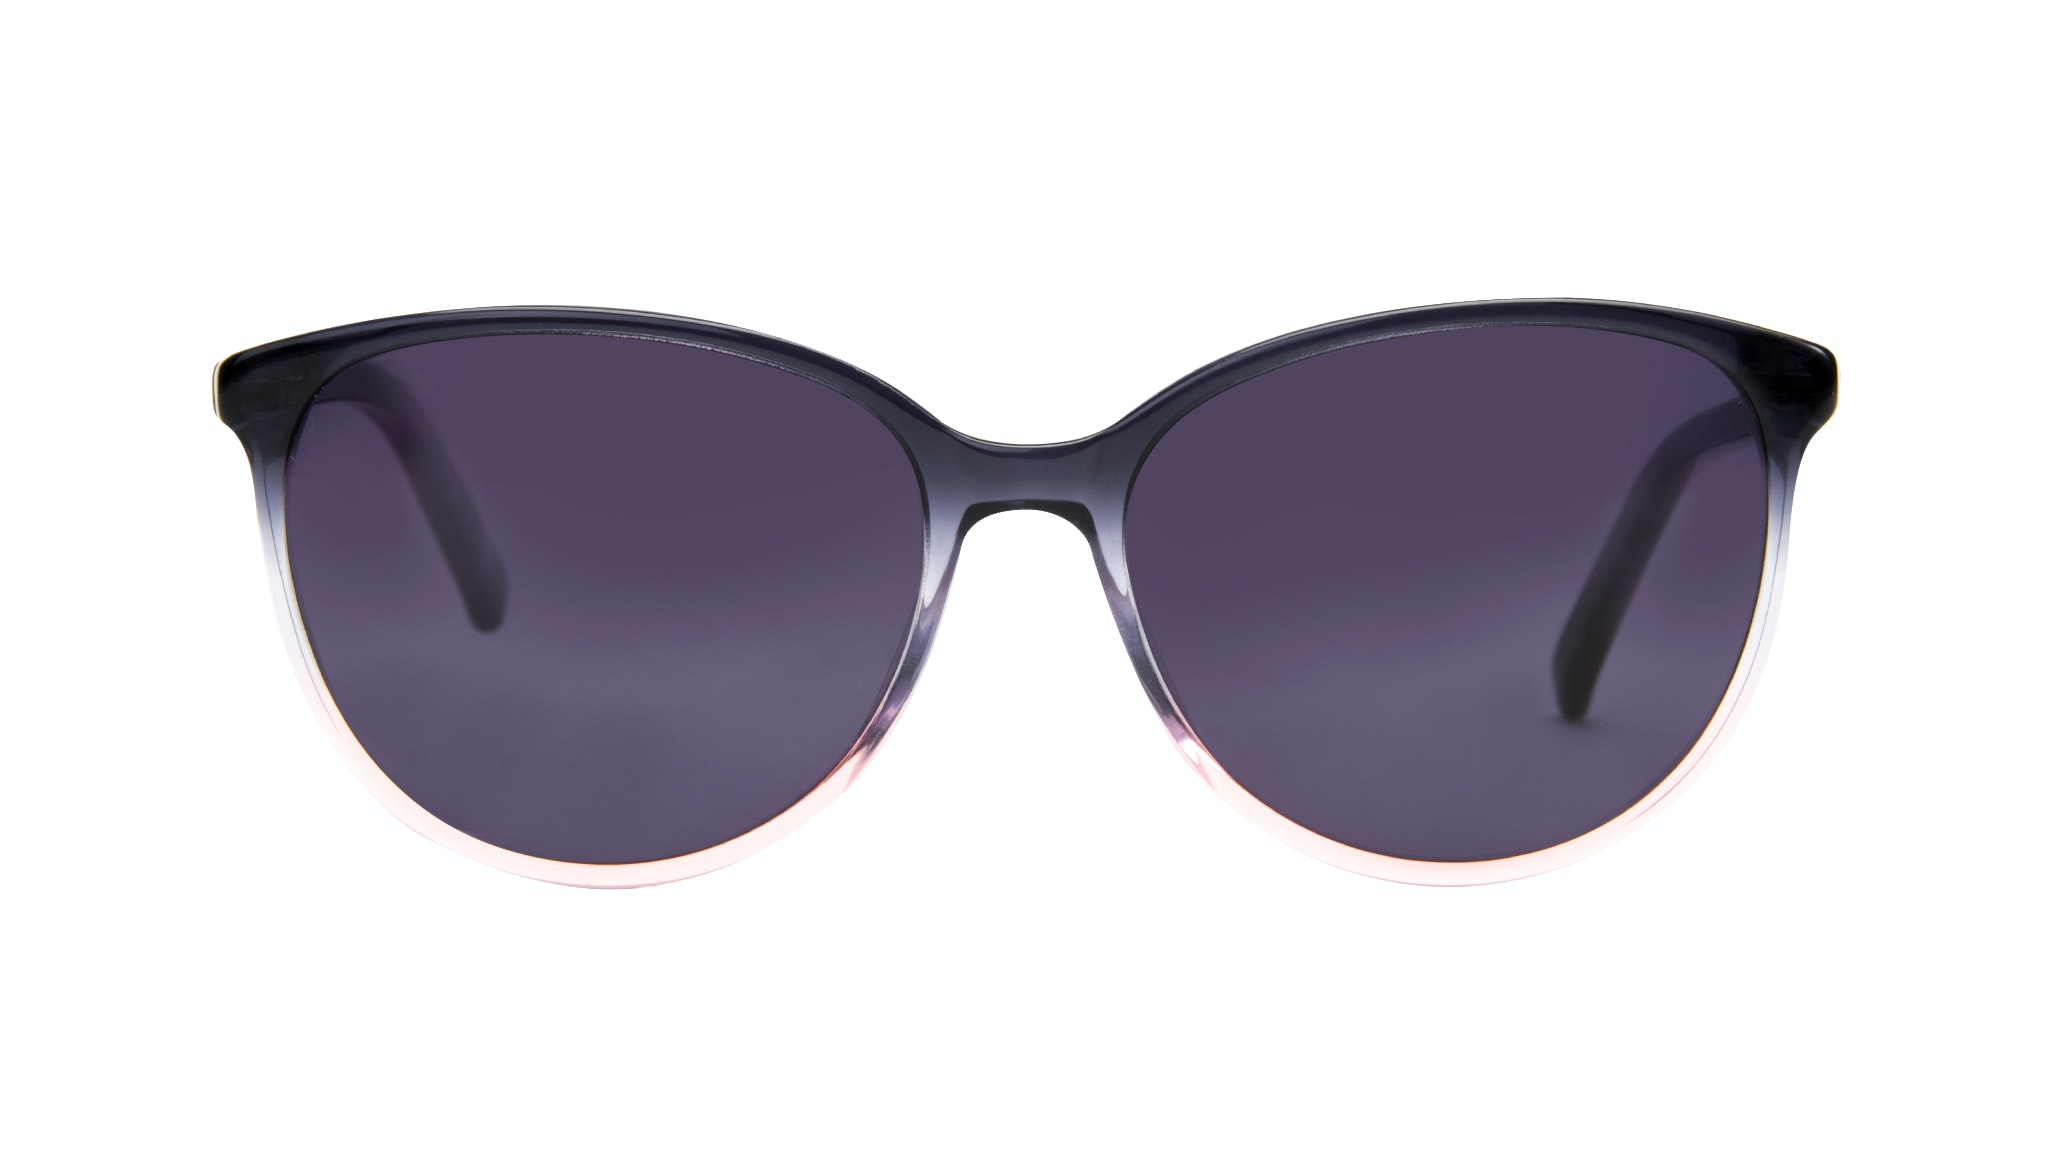 Affordable Fashion Glasses Cat Eye Round Sunglasses Women Imagine Pink Dust Front